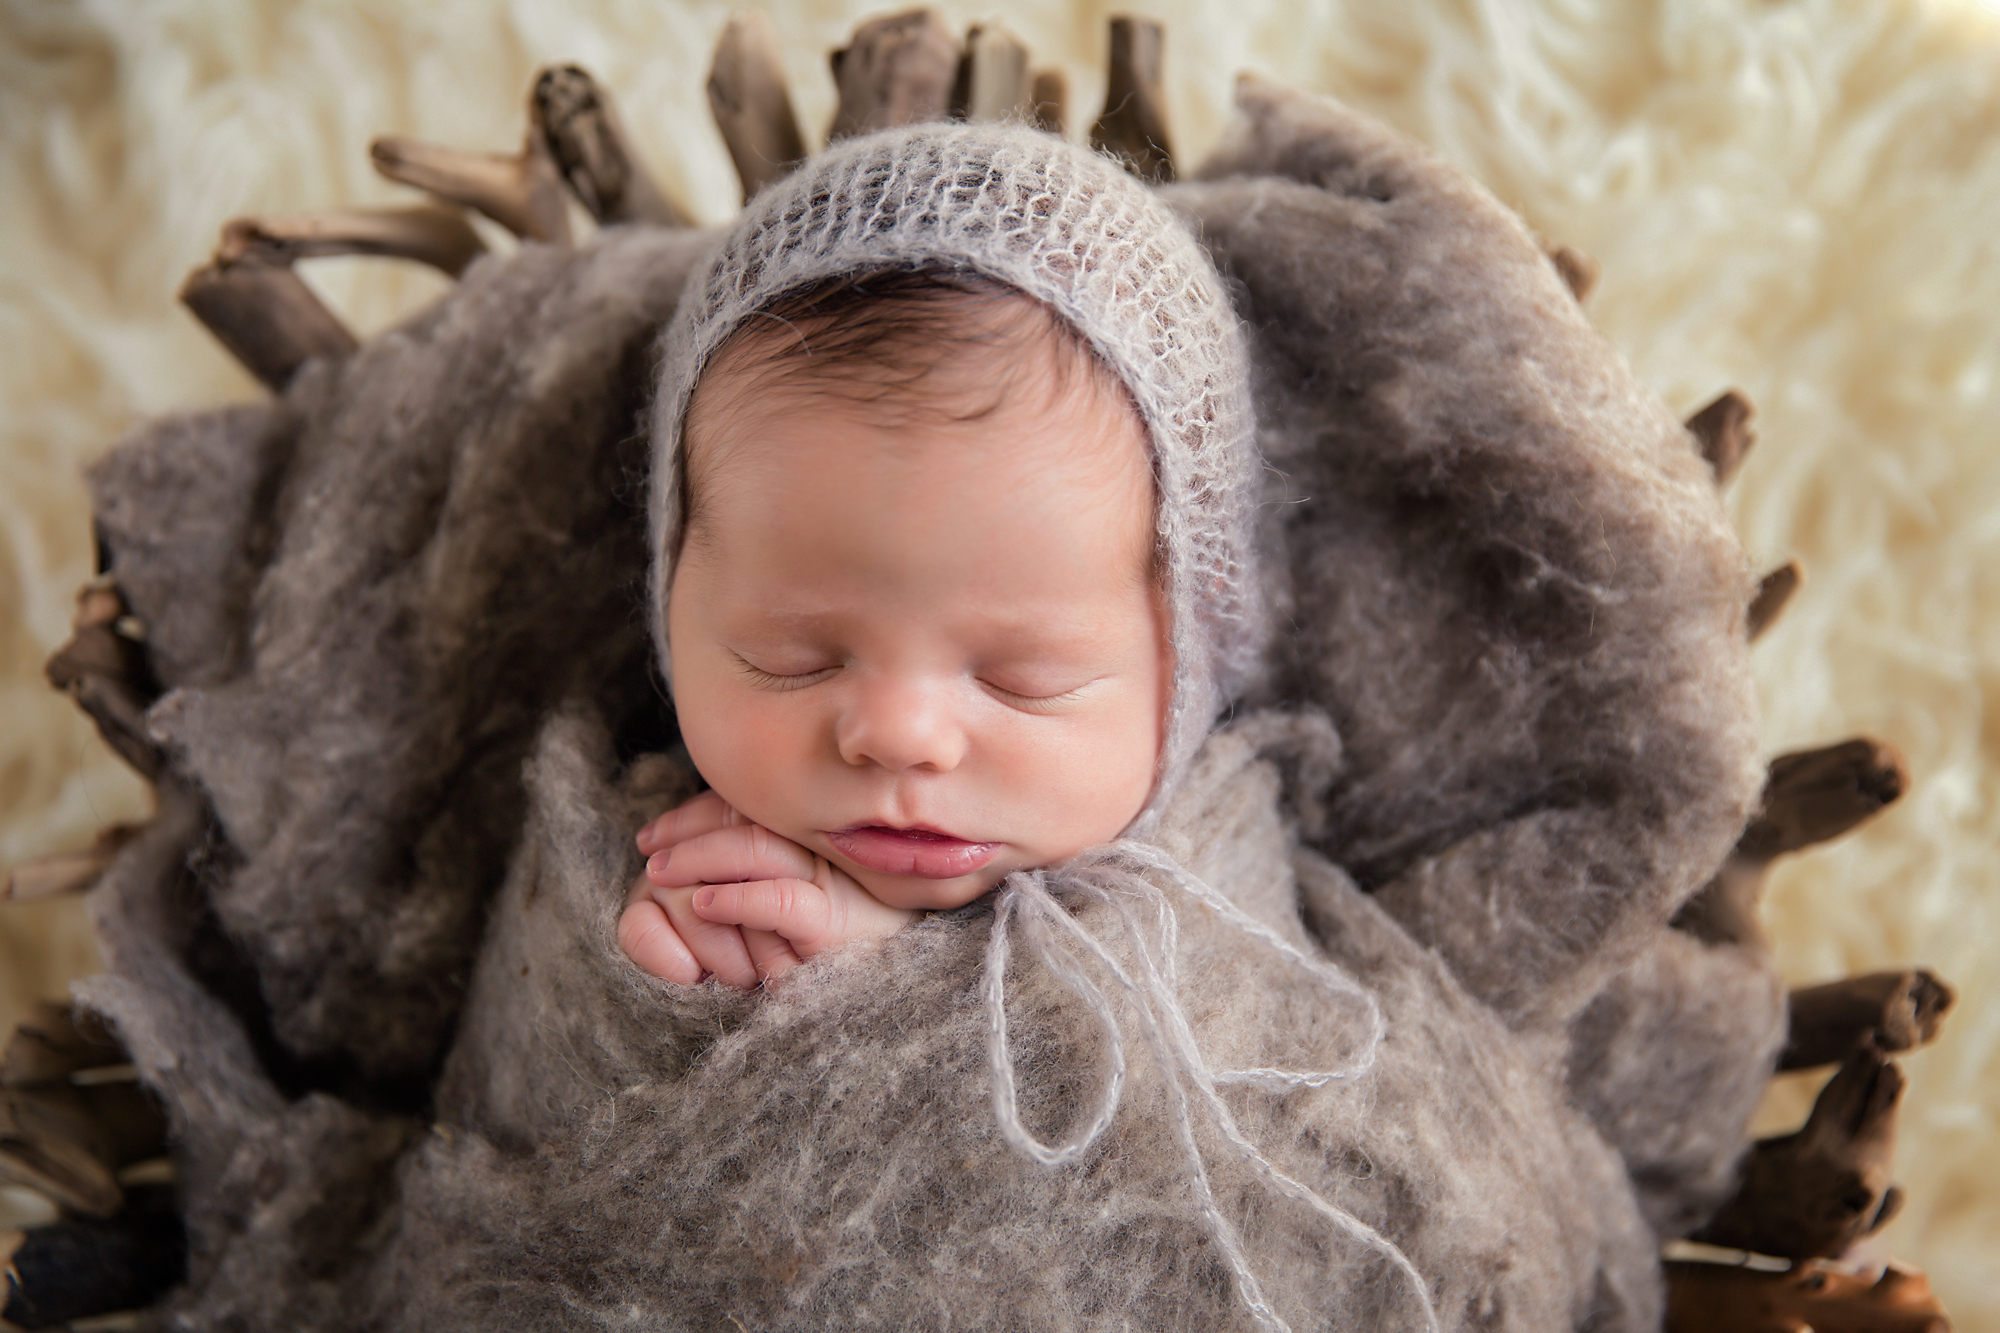 Newborn baby boy photoshoot ideas. Calgary and Airdrie newborn baby photographer - Milashka Photography. Game of Thrones inspired shot. Baby boy is sleeping soundly in a basket.